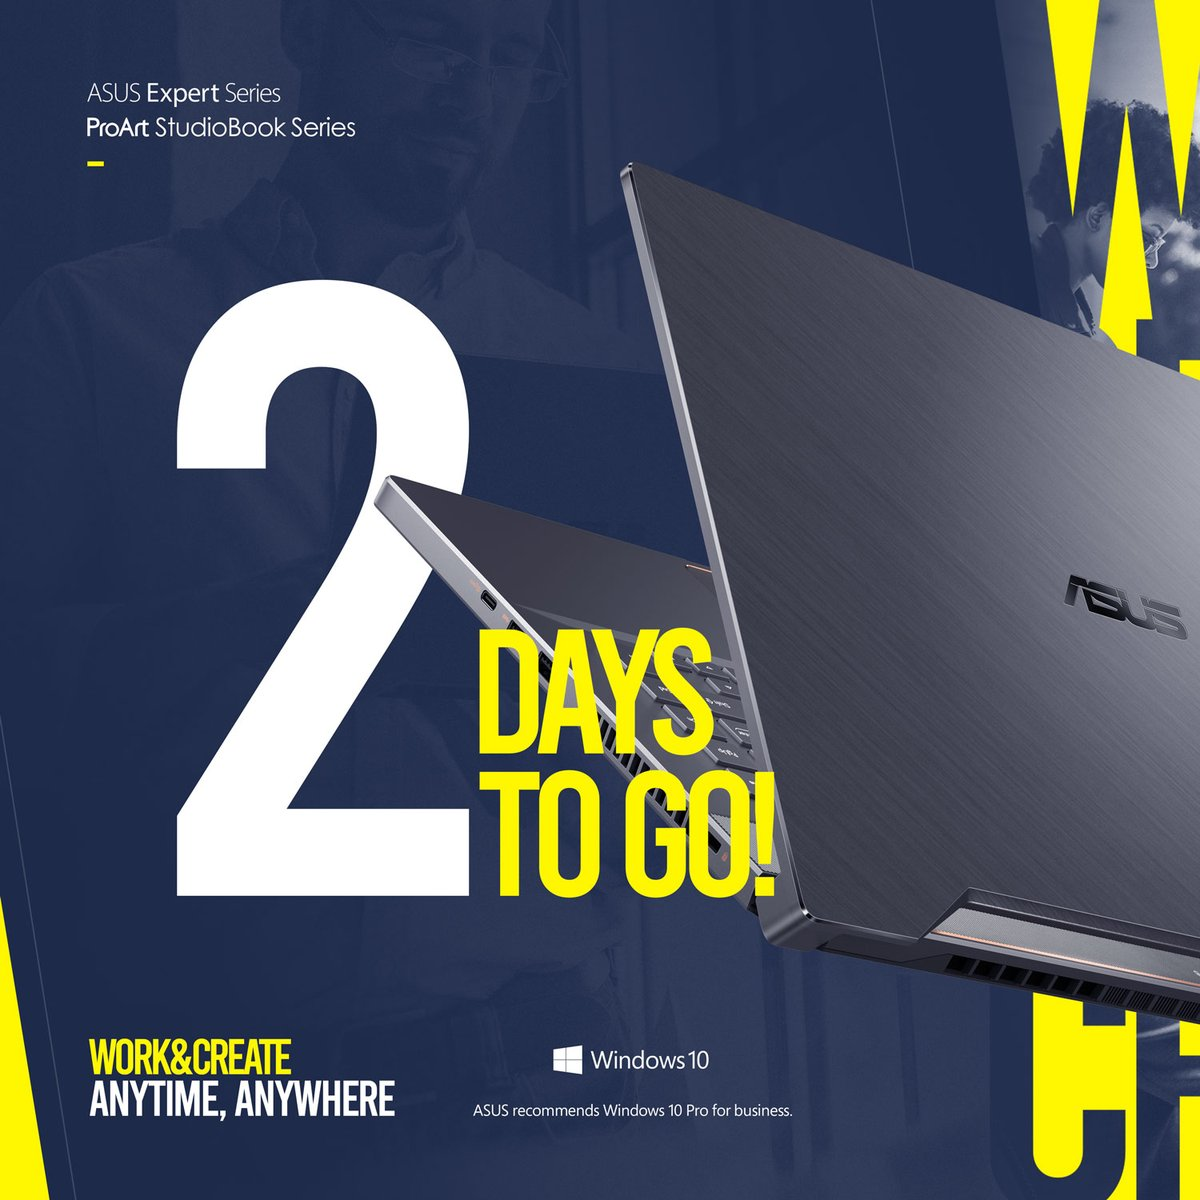 We are ready to Power Up your Imagination this June 19!  Be updated about the upcoming ASUS Expert Series and ASUS ProArt StudioBook series launch here: https://t.co/Ds43hTWDob  #ASUSWorkAnytimeAnywhere #ASUSCreateAnytimeAnywhere #ASUSExpertBookB9 #ASUSProArtStudiobook https://t.co/aNwNp4cccZ